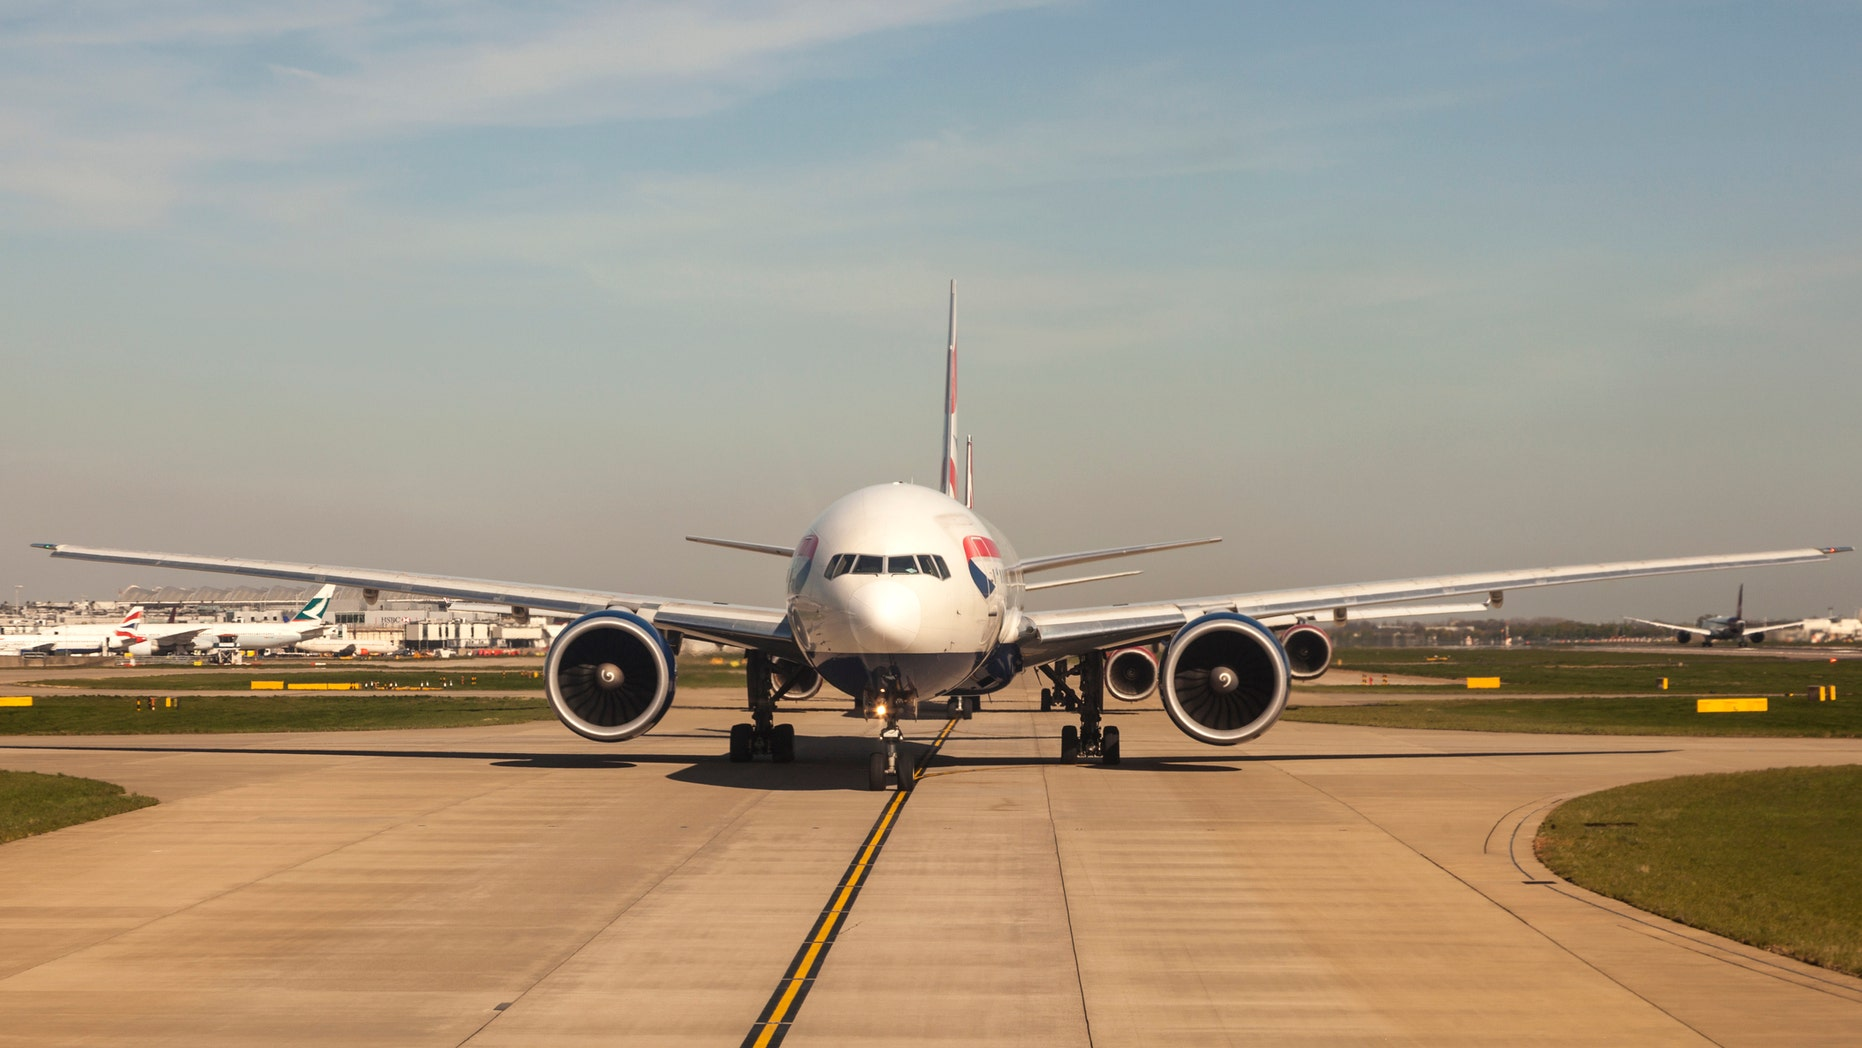 Passengers complained of being stuck on flights waiting to depart — bothmHeathrow and other airports — after a problem with the runway lights.